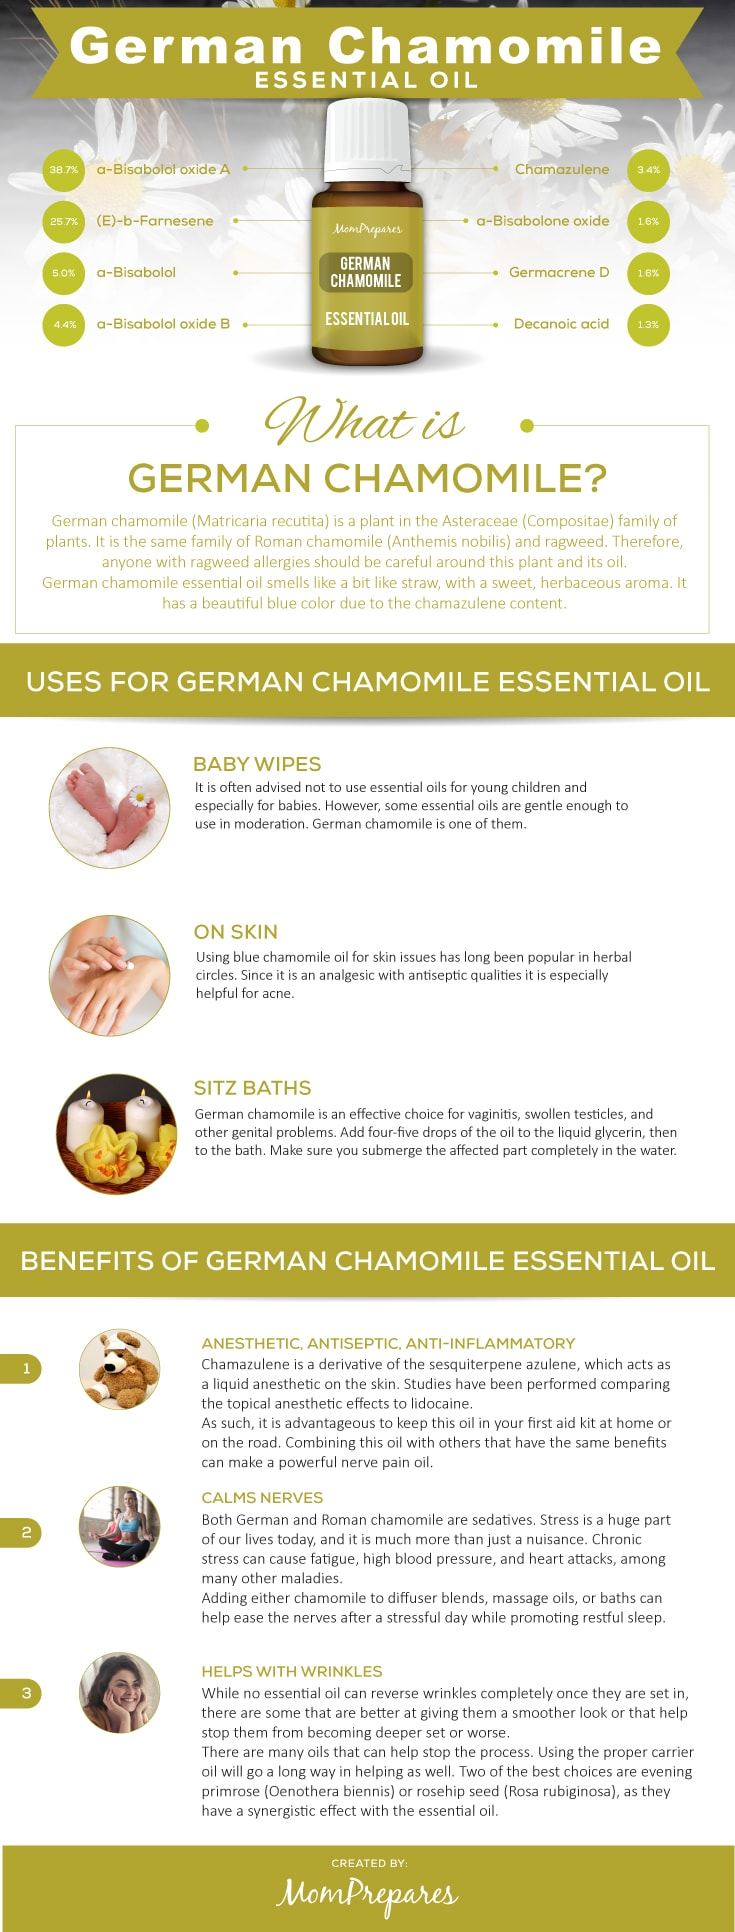 German Chamomile infographic